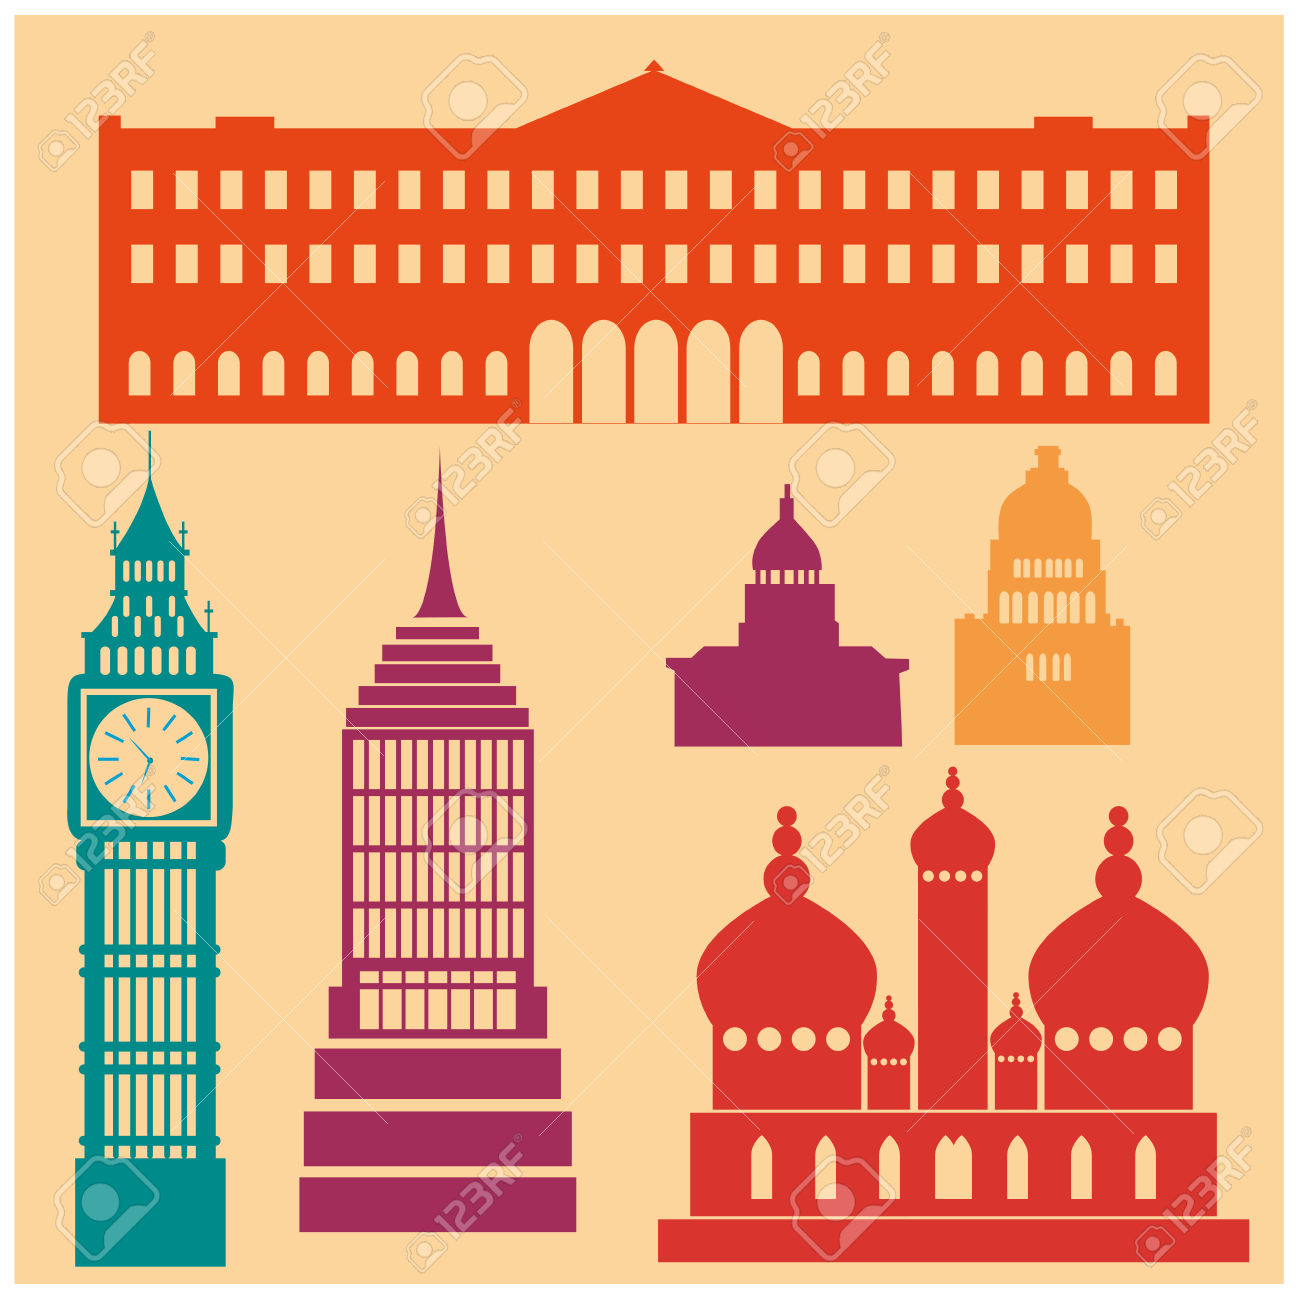 Some Colored Silhouettes Of Famous Buildings Around The World.